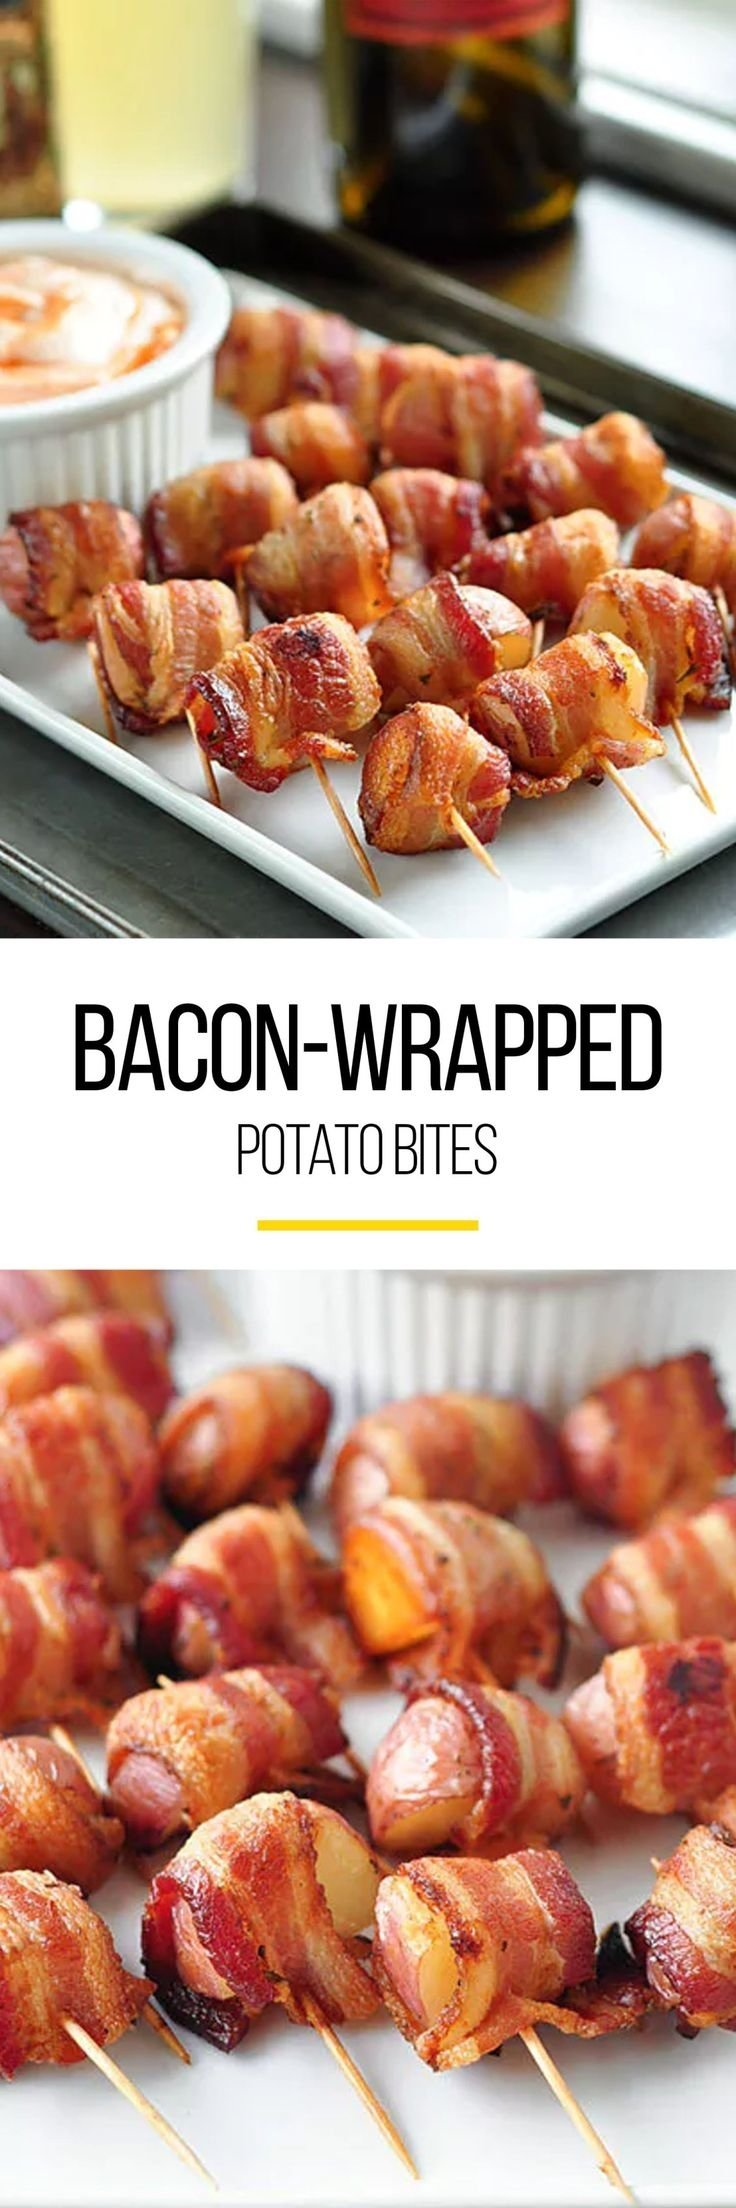 10 Unique New Years Eve Finger Food Ideas 266 best awesome appetizers images on pinterest baked ricotta 2021